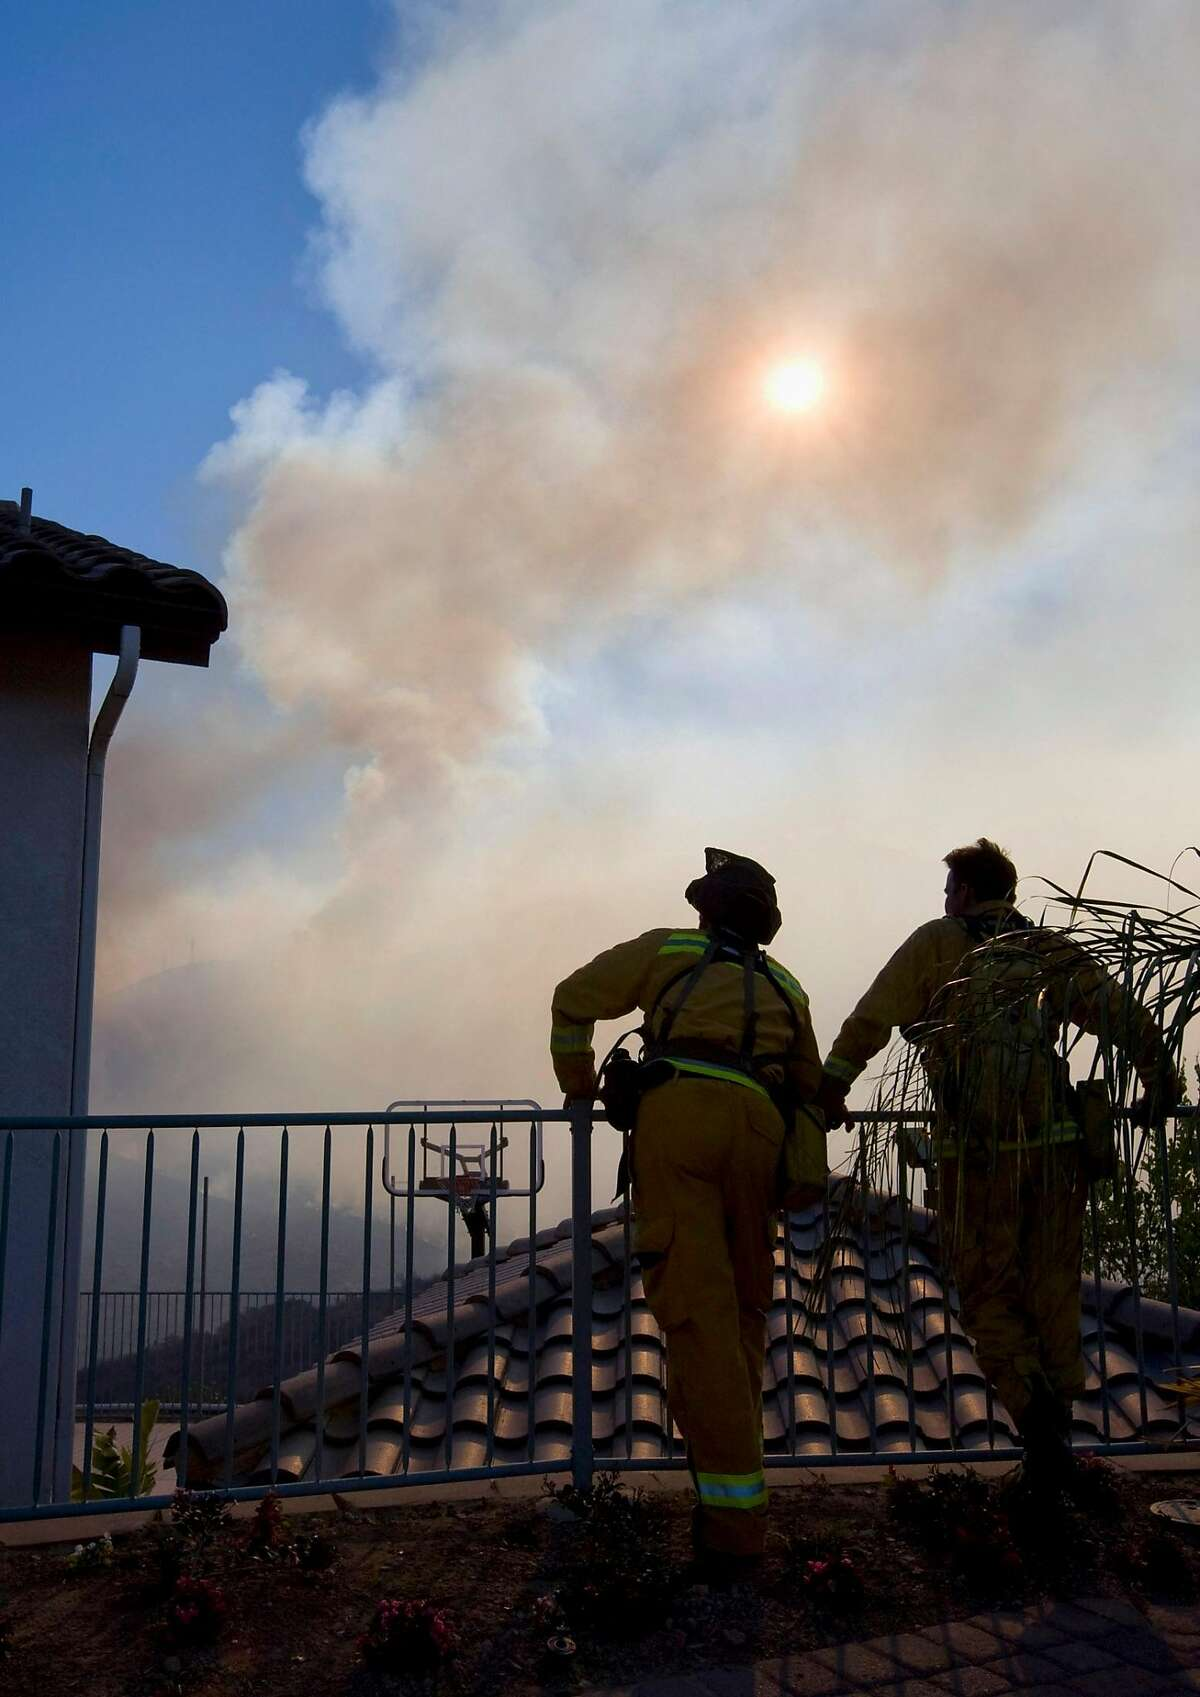 Firefighters watch the progress of the Harris Fire as it burns toward homes in Spring Valley (San Diego County) 2007. That fire burned part of the land where new development is planned. The state has joined lawsuits claiming the new projects weren't adequately reviewed.